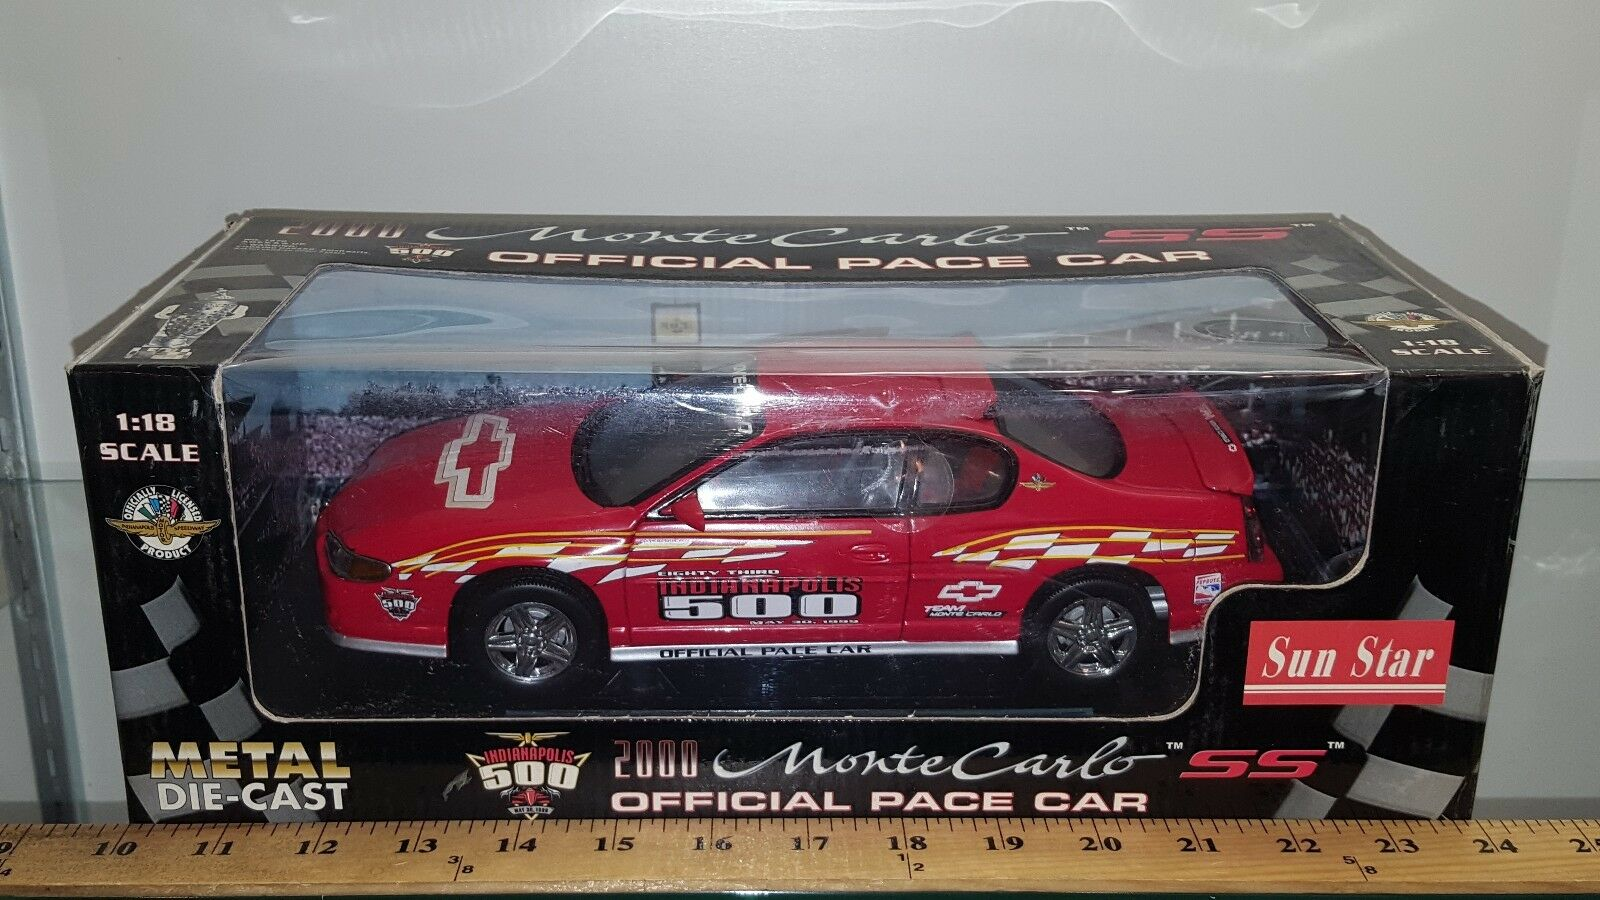 1 18 Sun Star Indianapolis 500 oficial Pace Car 2000 Monte Carlo Ss rosso BD-U